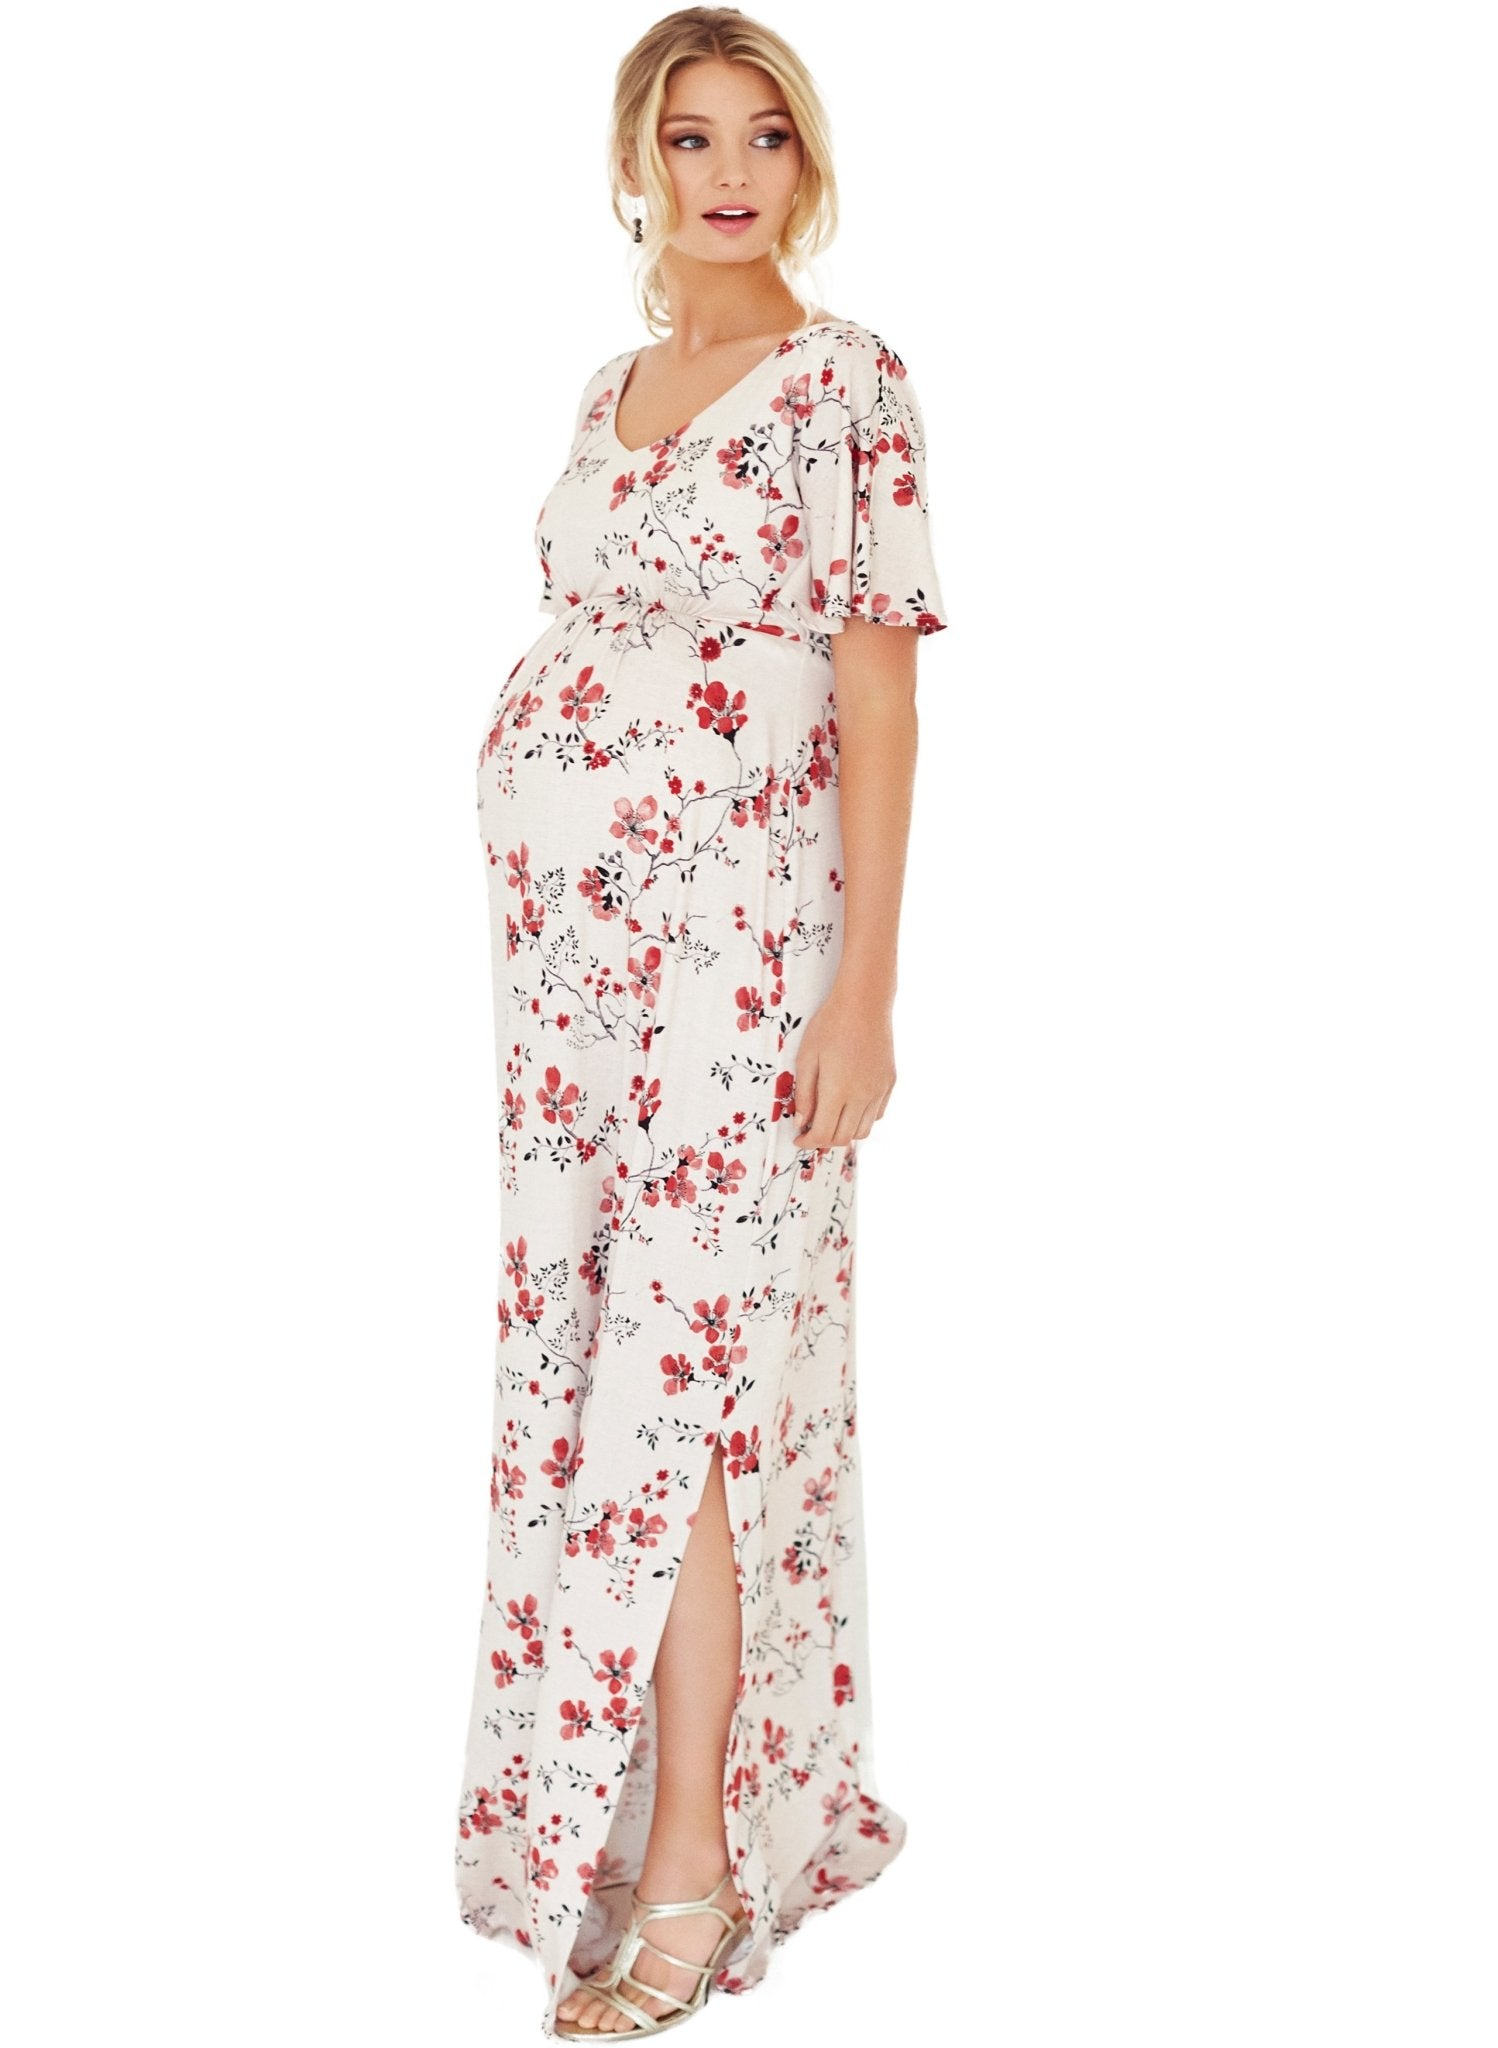 Kimono Maternity Maxi Dress - Cherry Blossom - Mums and Bumps